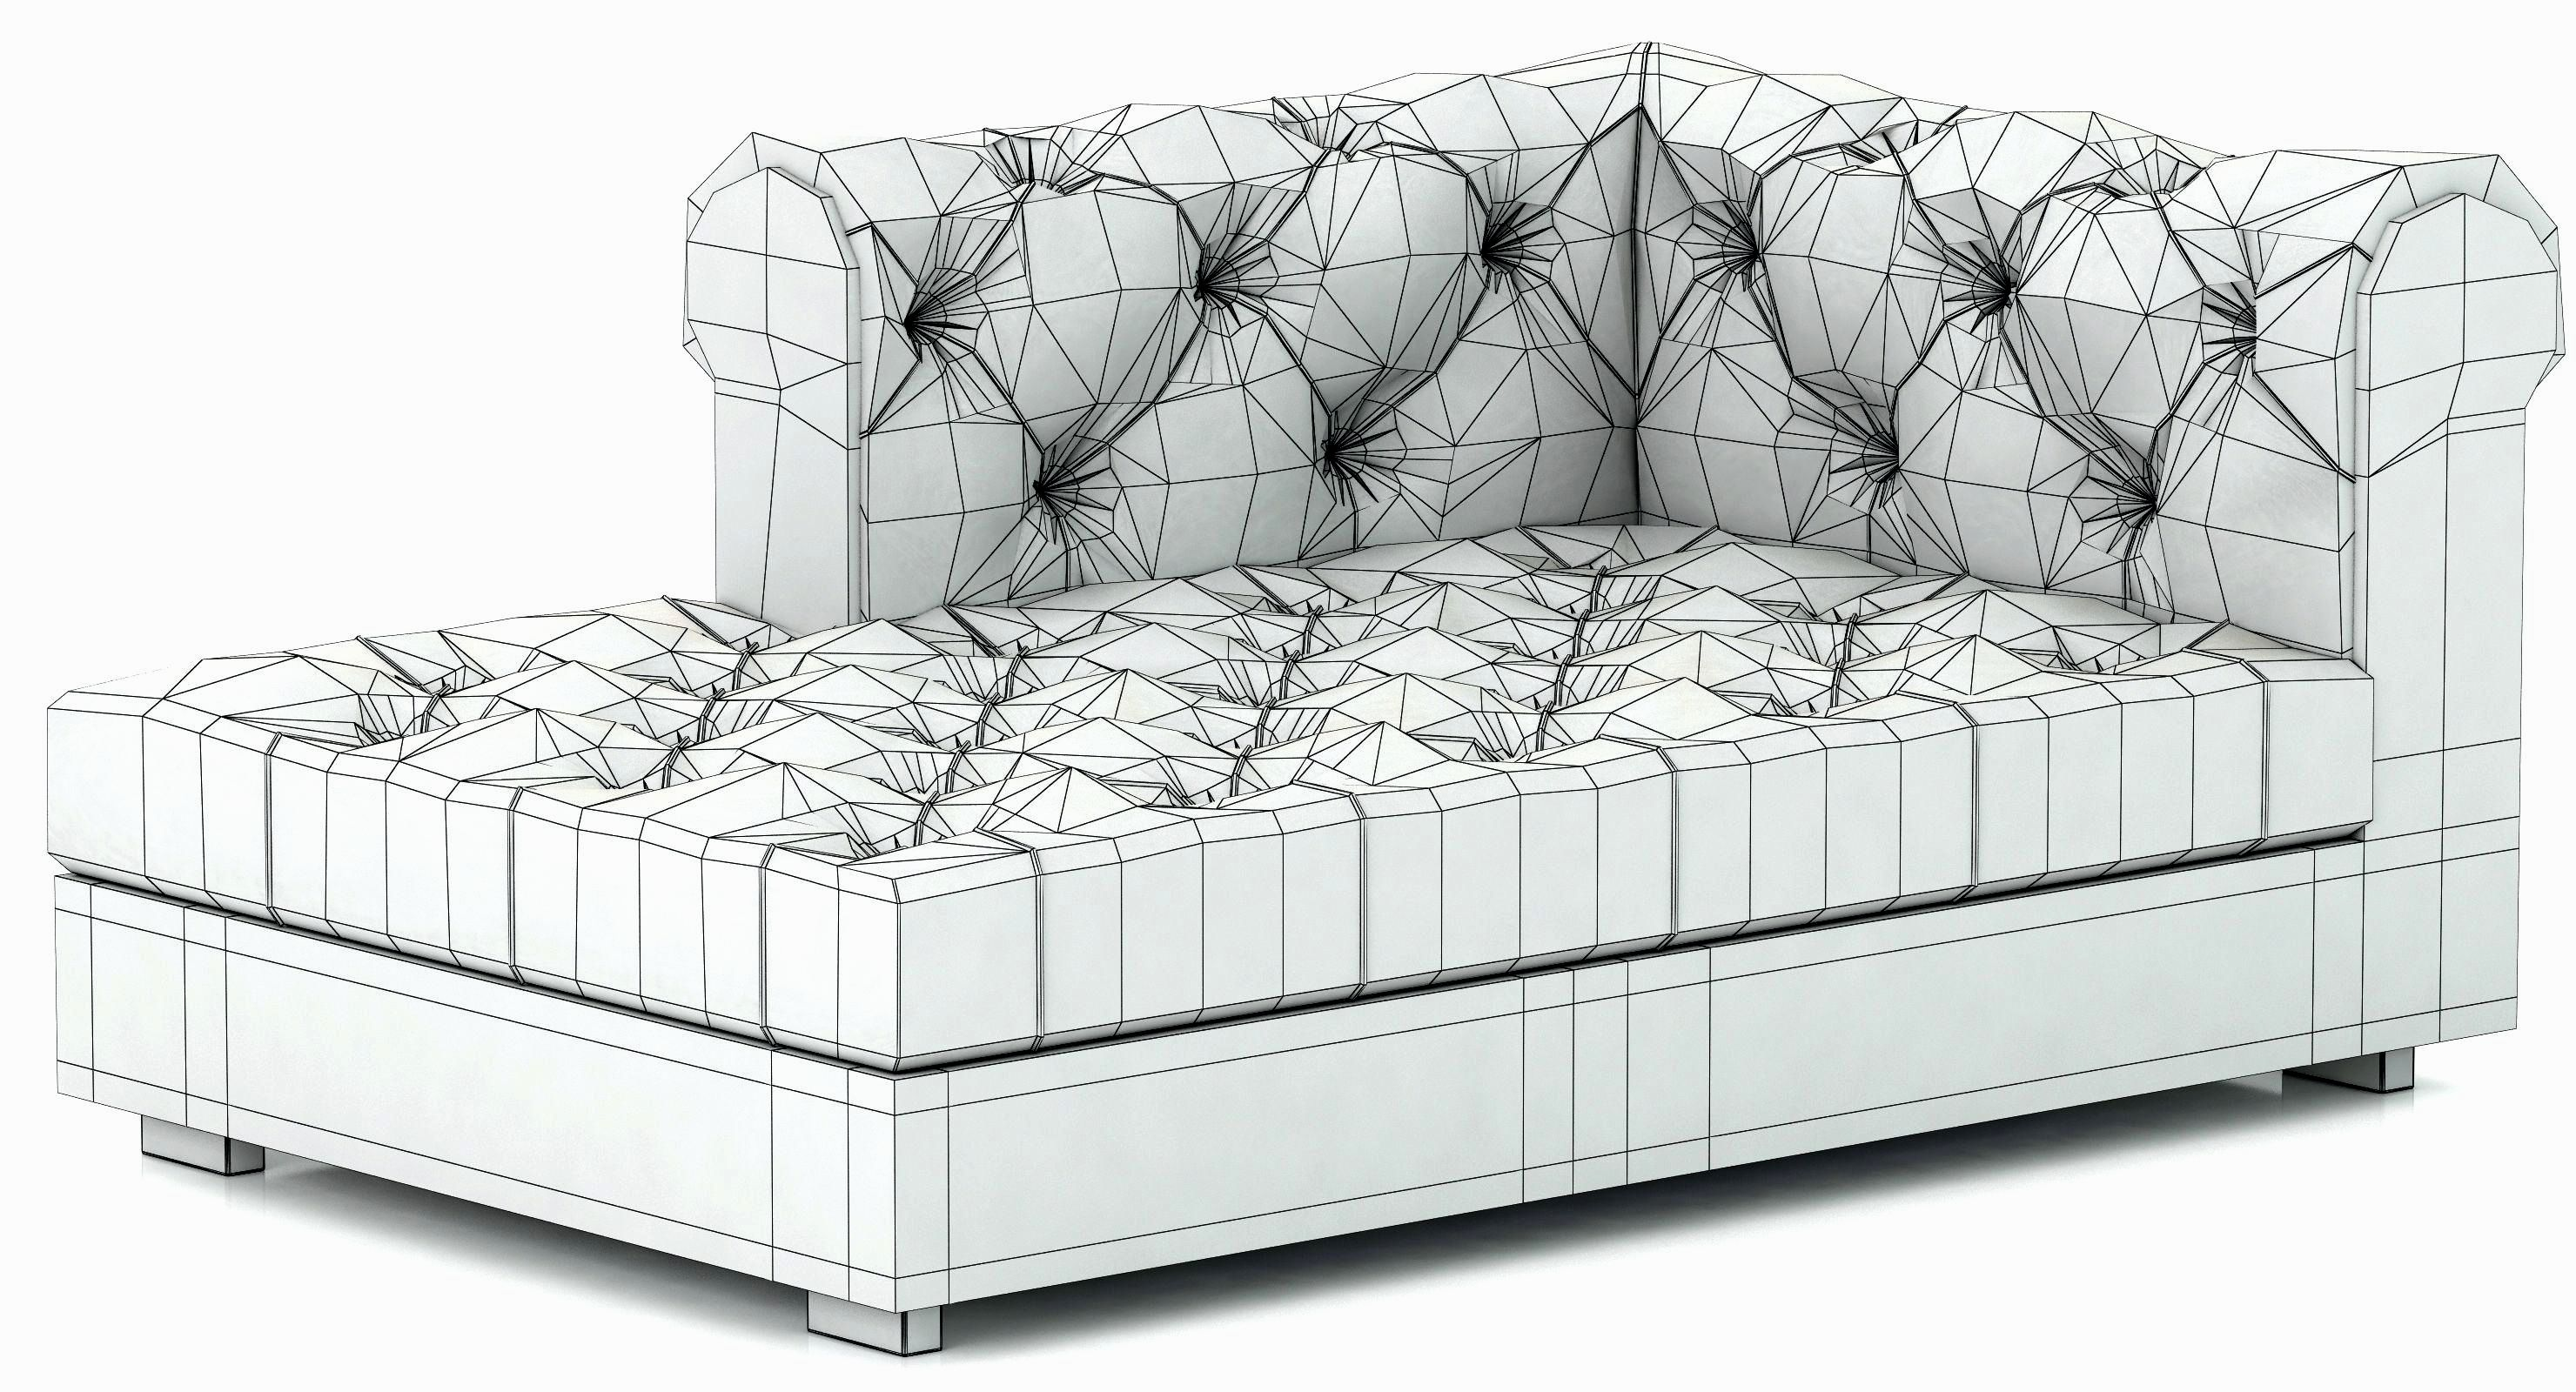 fresh double chaise lounge sofa model-Awesome Double Chaise Lounge sofa Collection